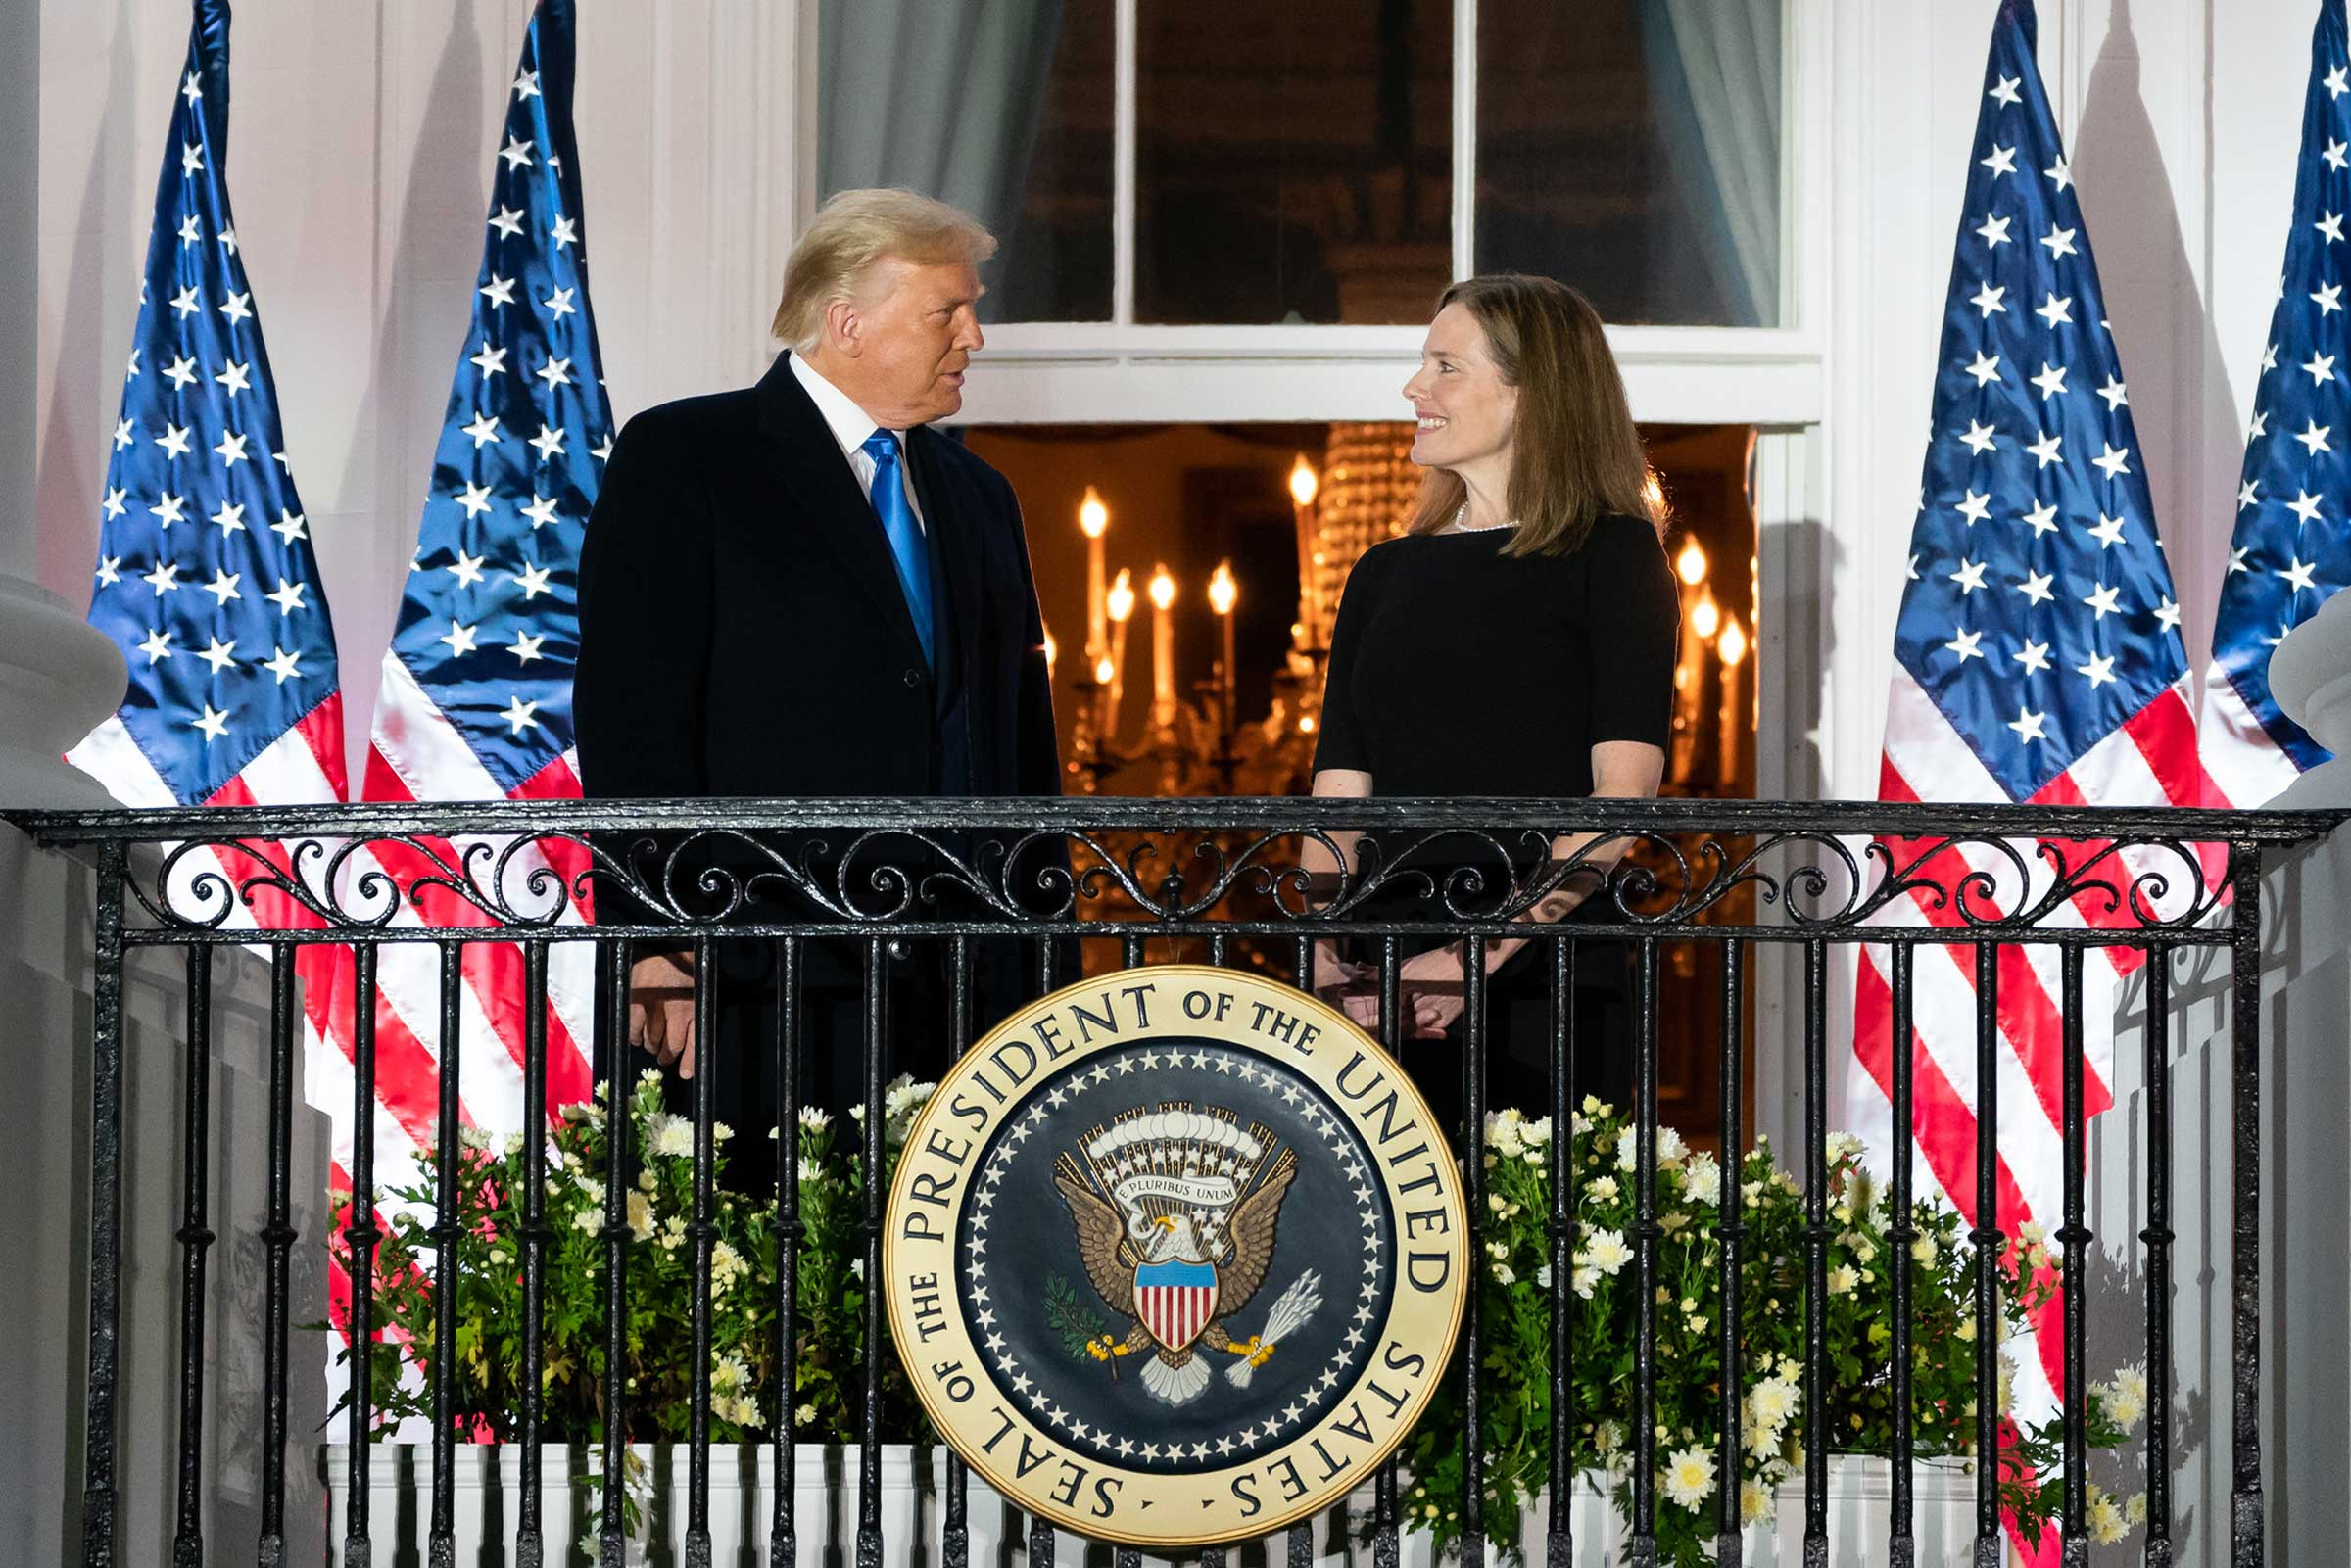 President Donald J. Trump and U.S. Supreme Court Associate Justice Amy Coney Barrett stand on a balcony. They are both white and dressed up.